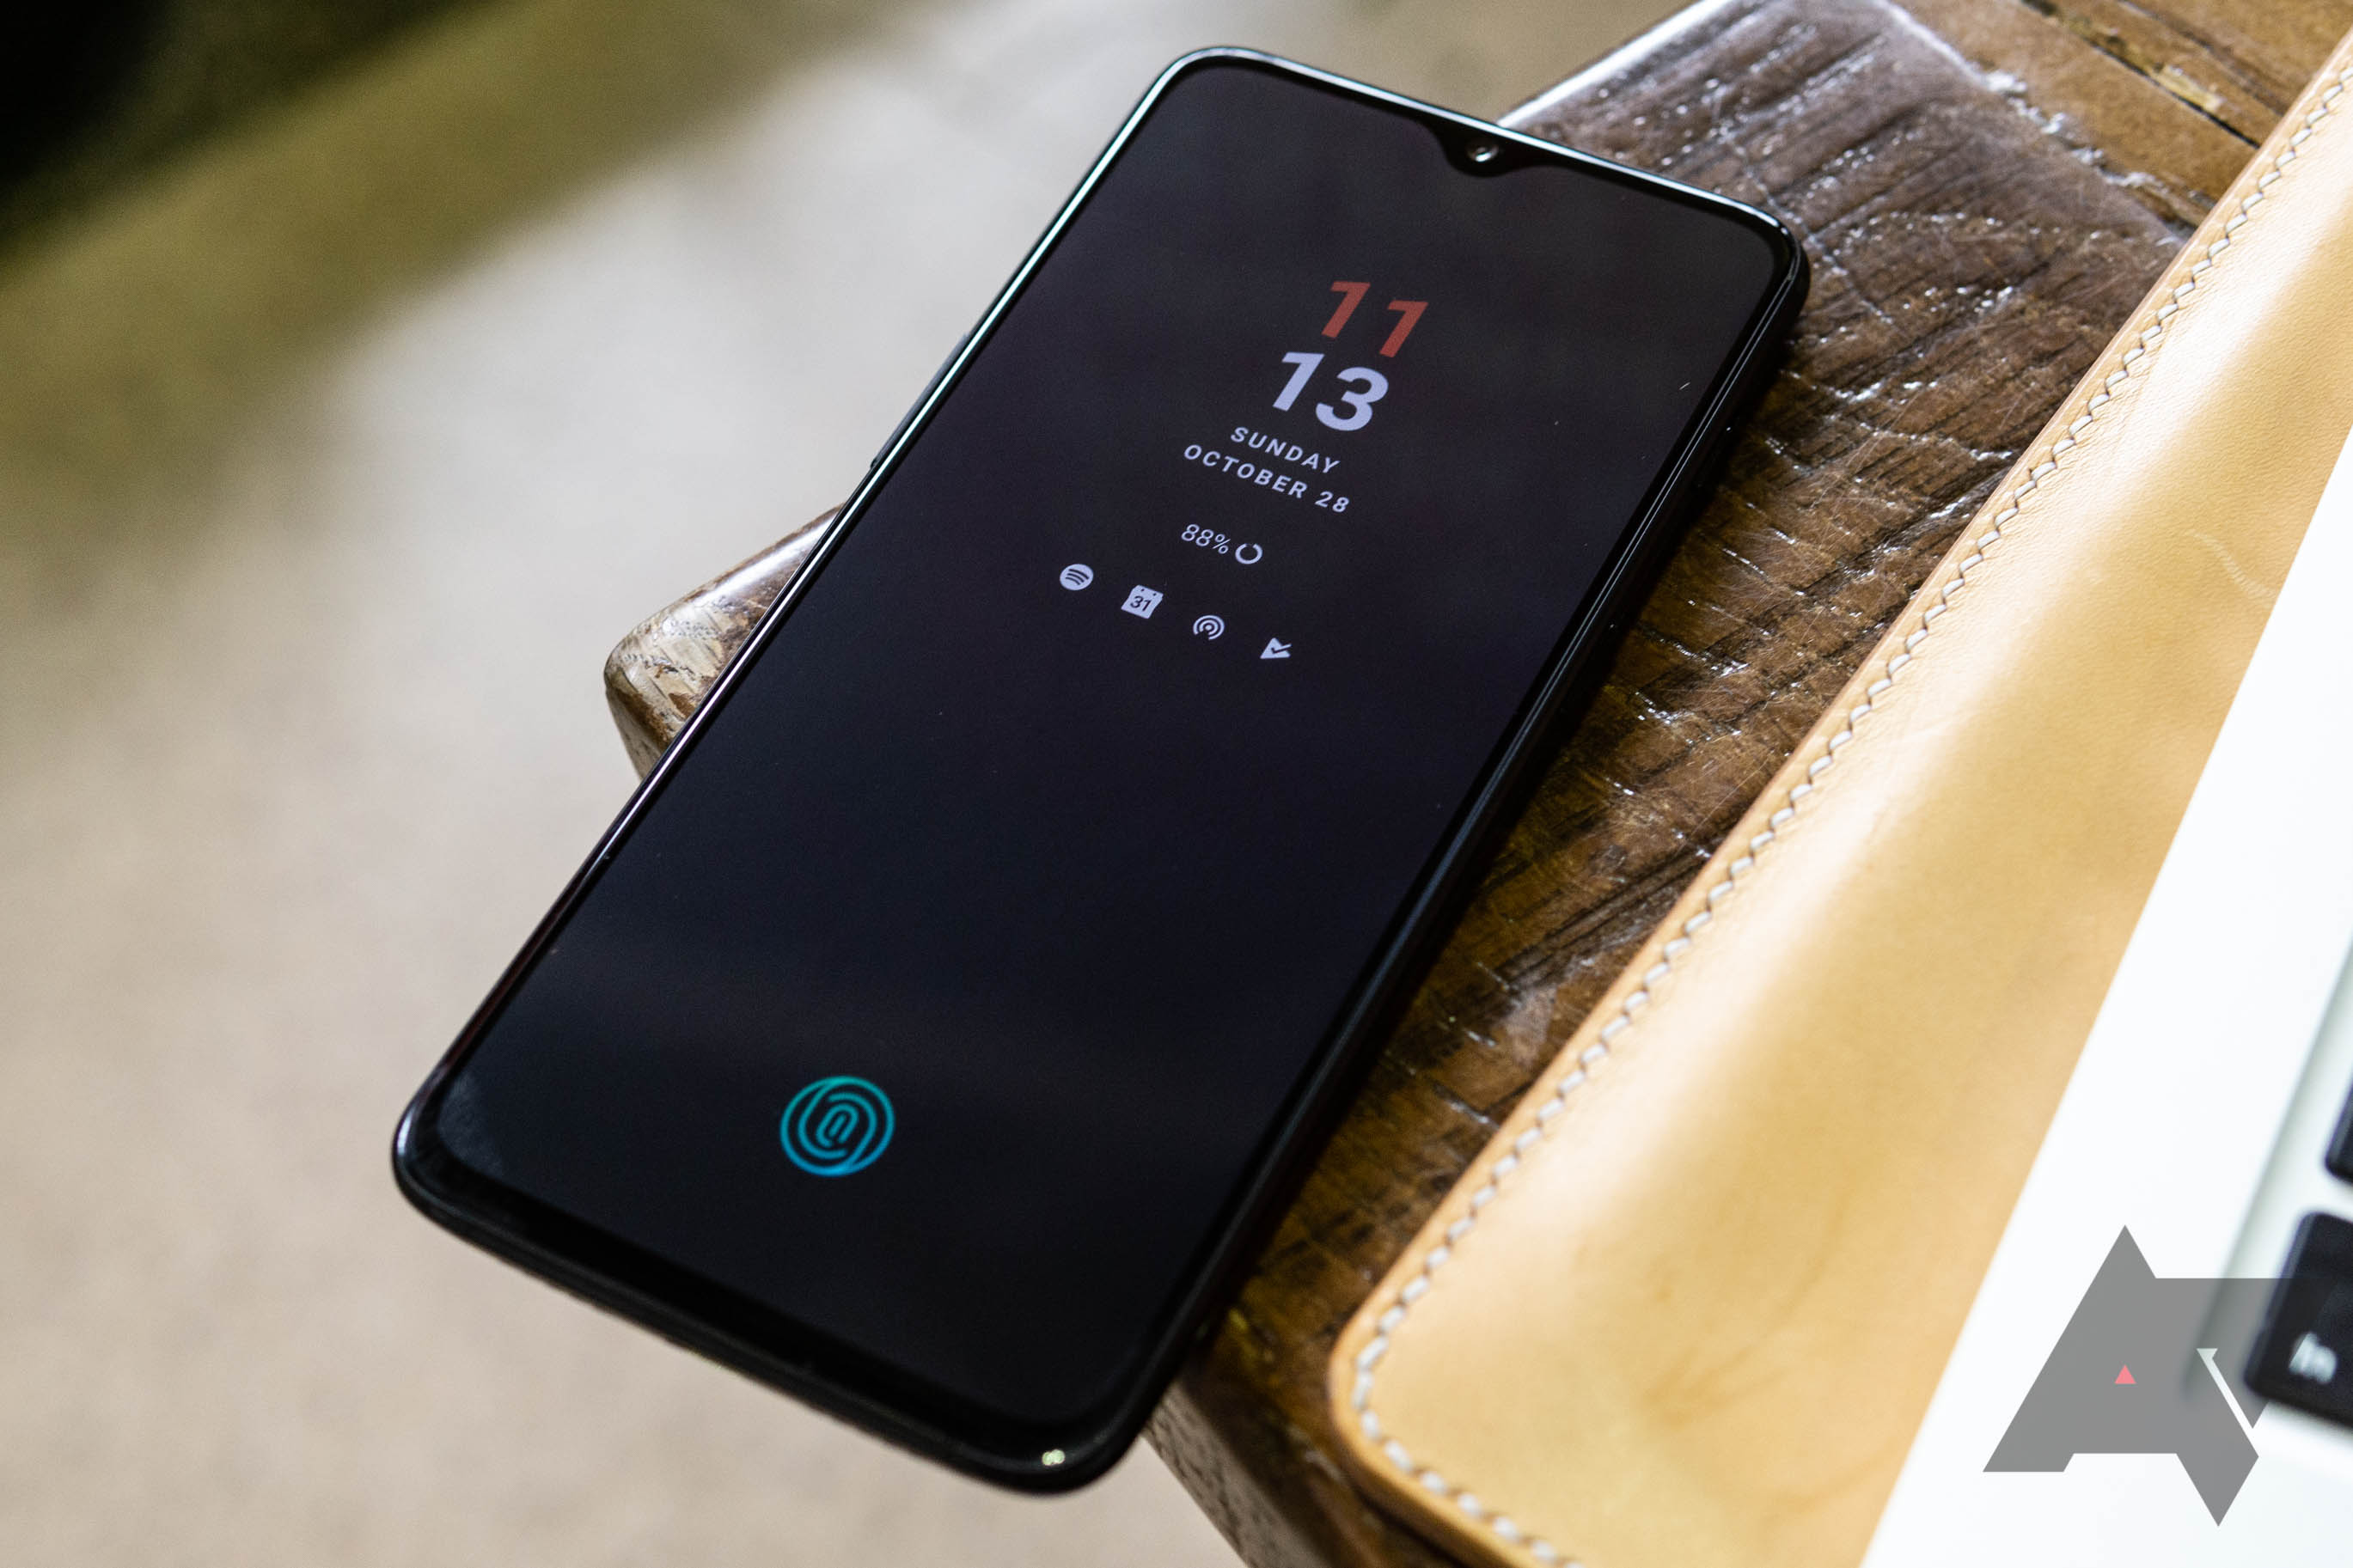 Image result for Oppo Joins Wireless Power Consortium, Upcoming OnePlus and Oppo Phones Could Come With Qi Wireless Charging